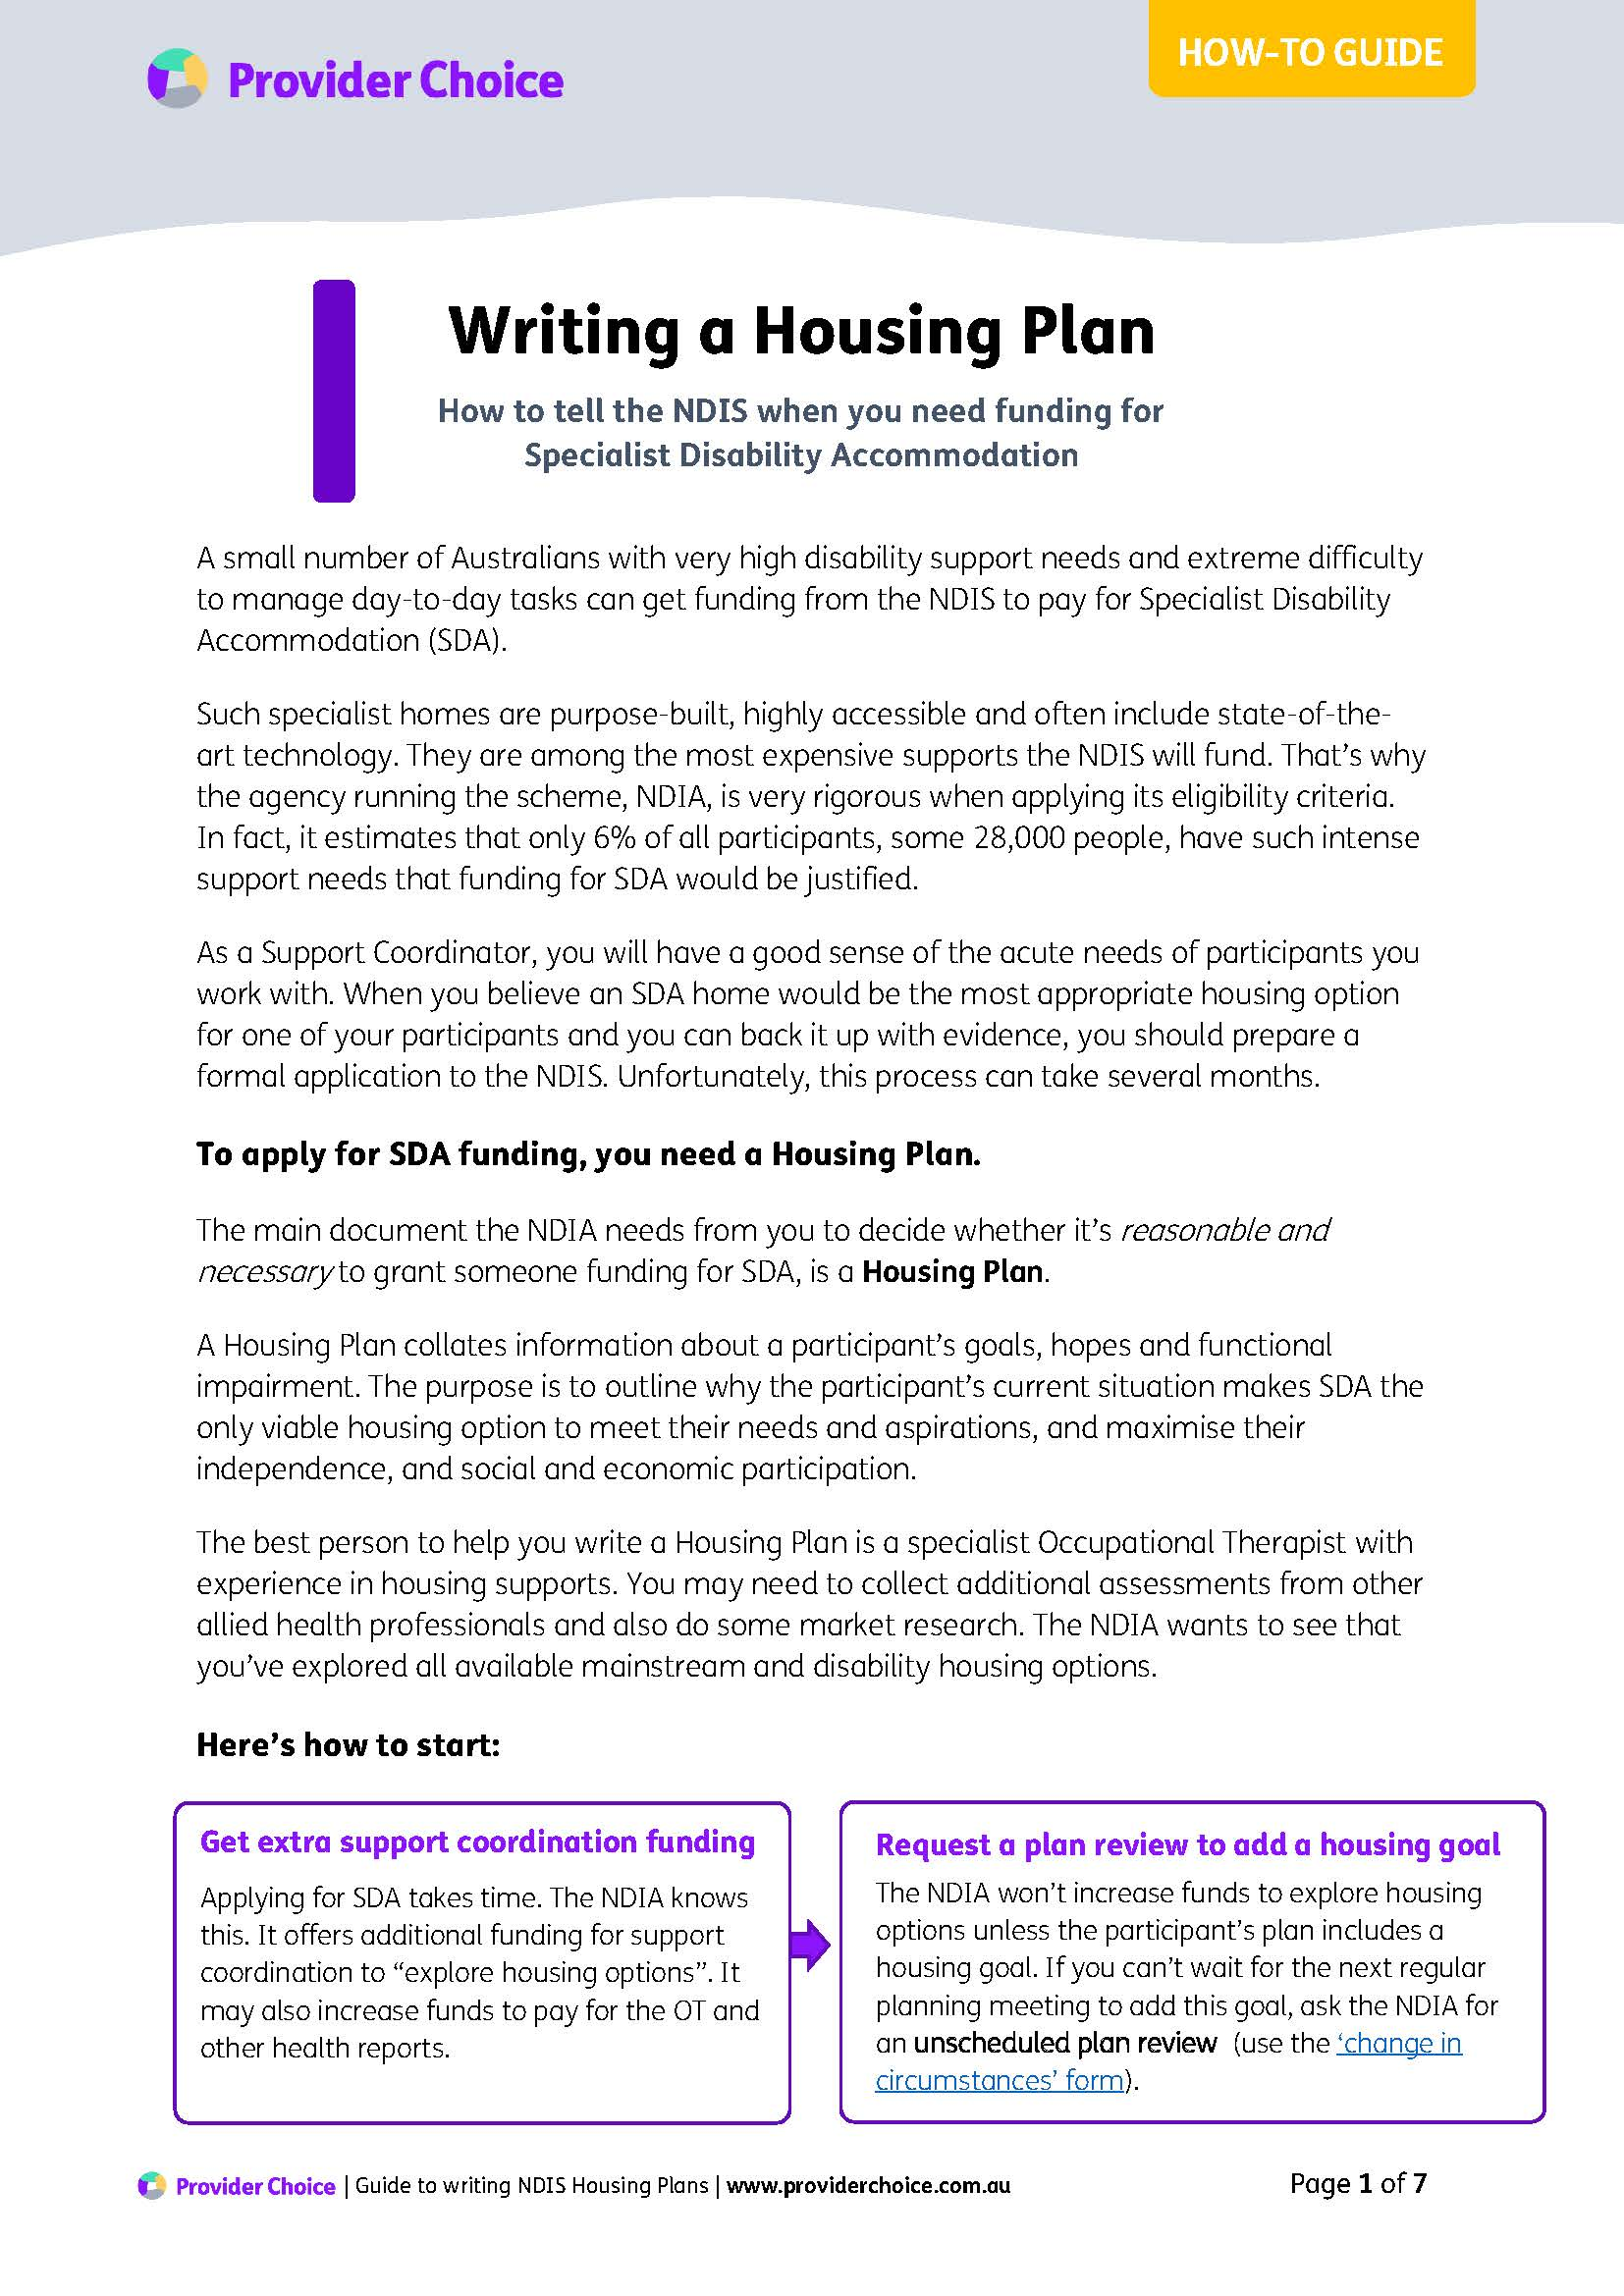 How to write a Housing Plan